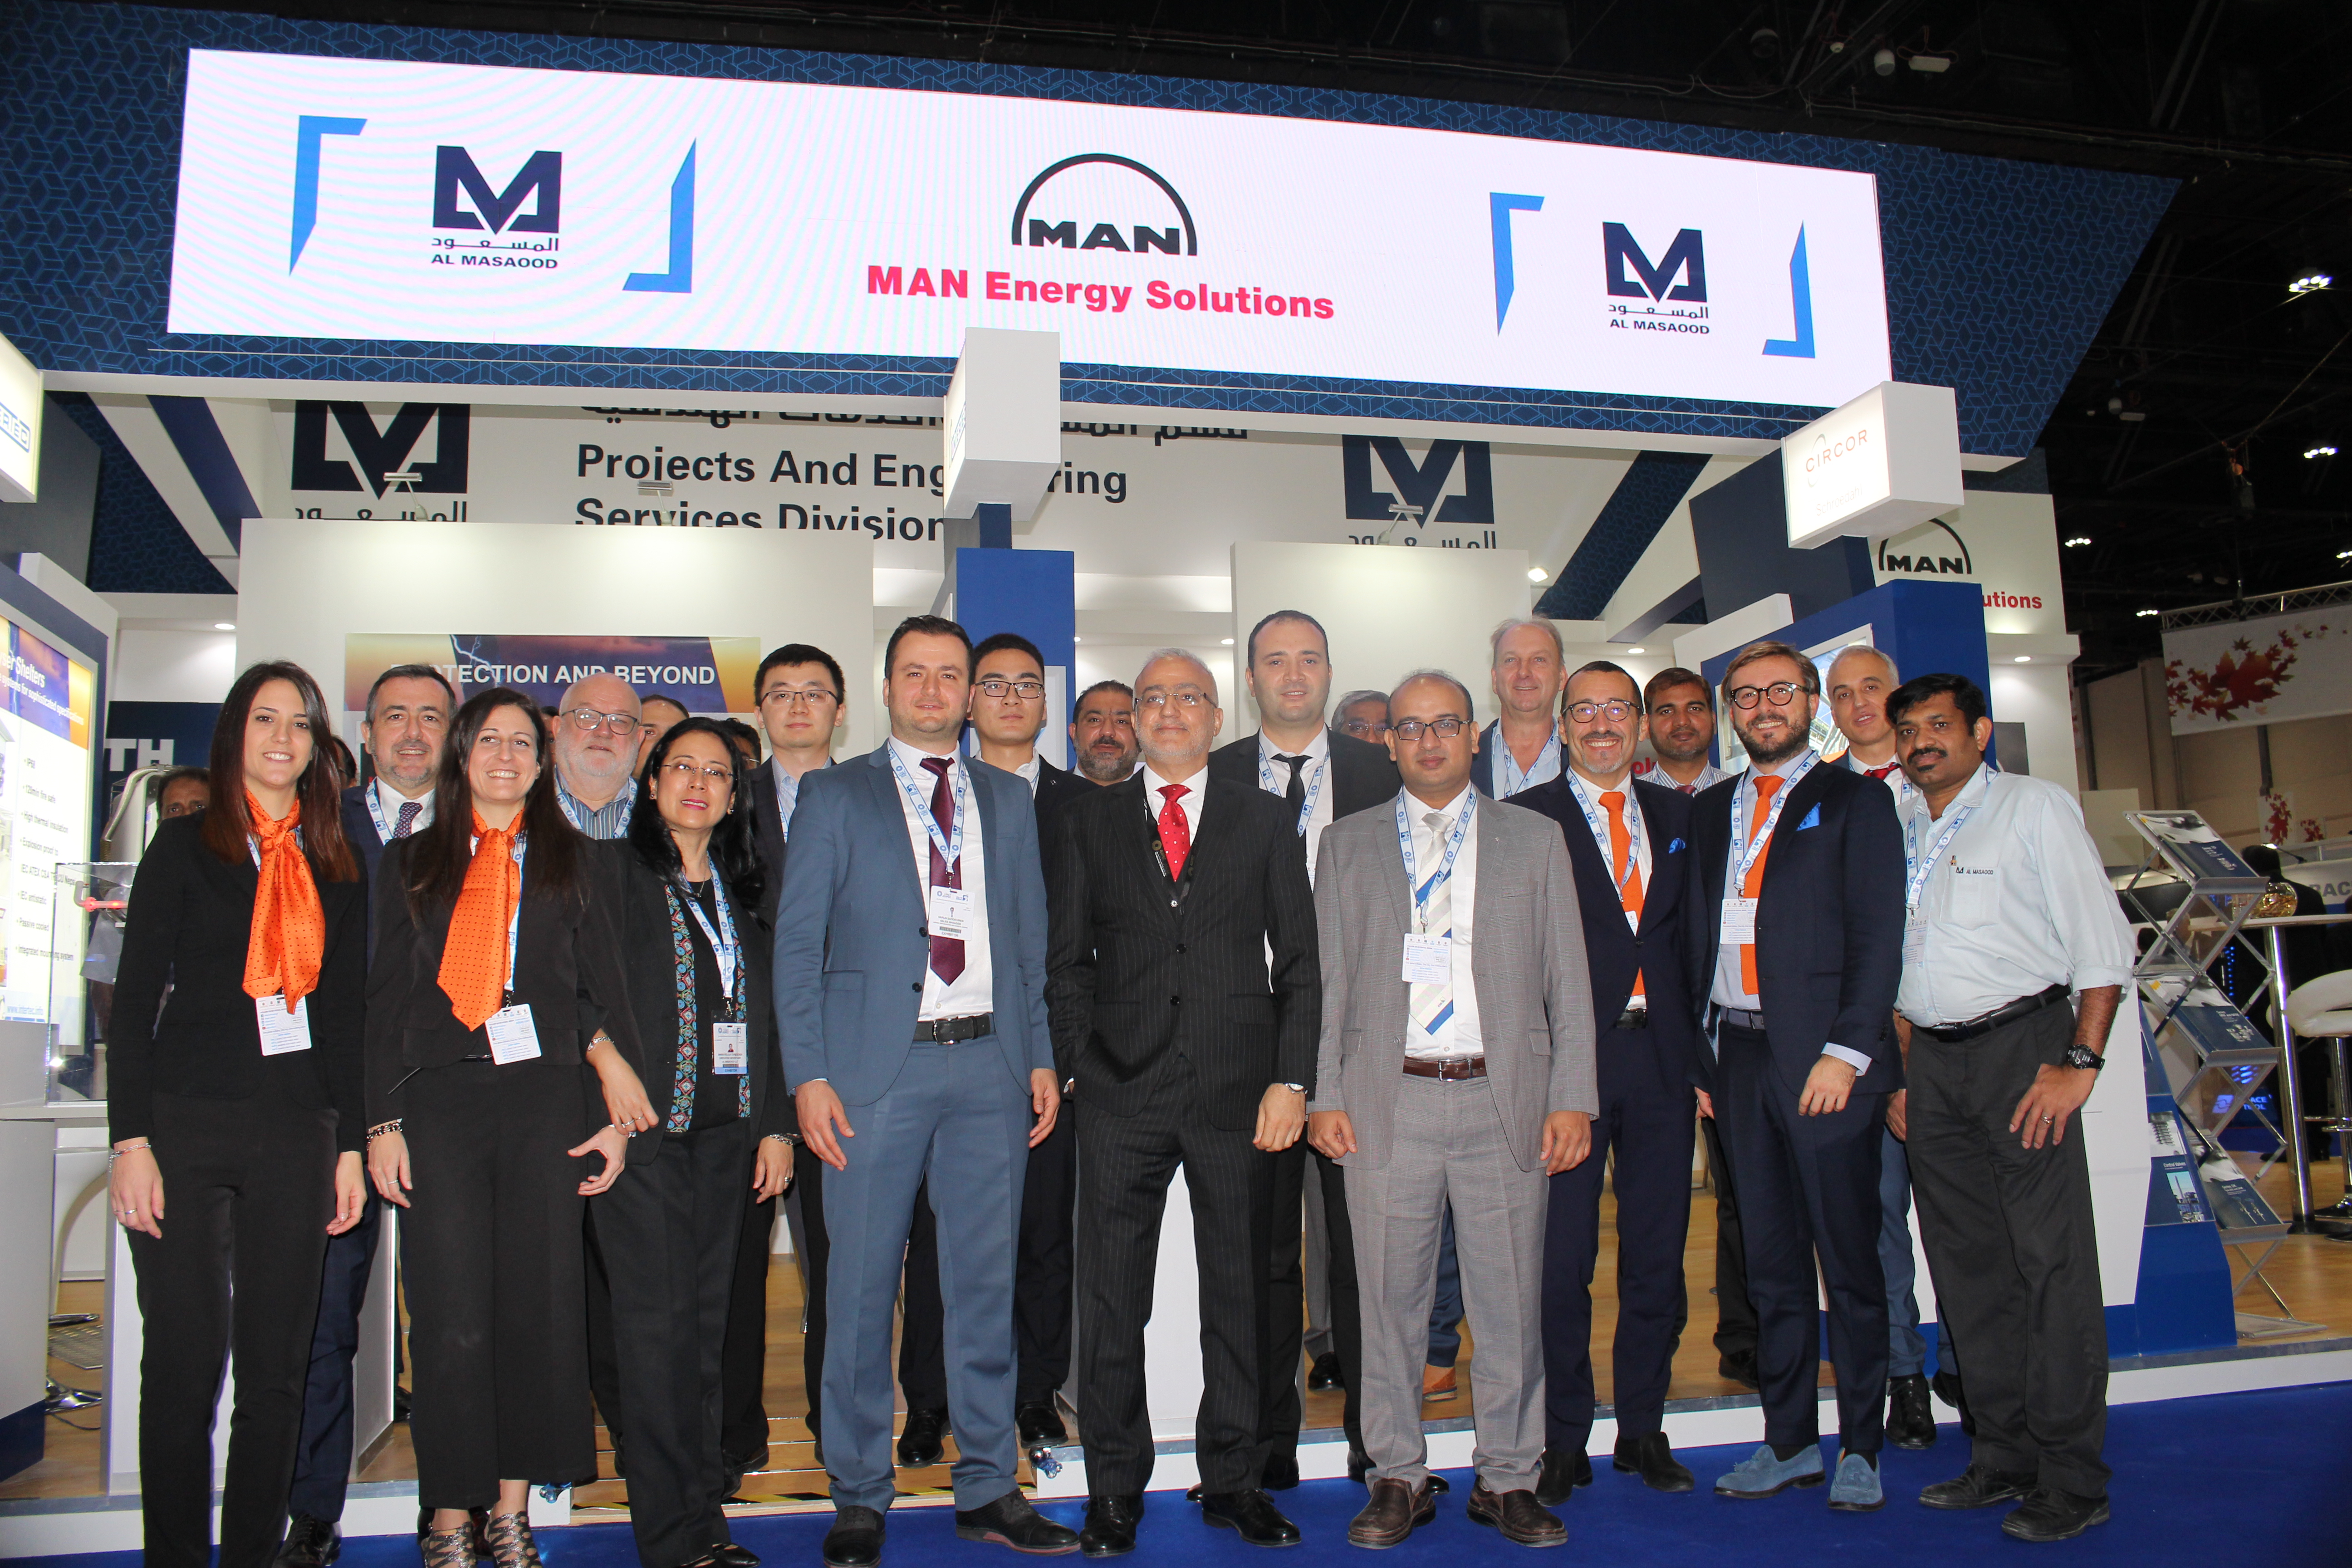 Al Masaood's Projects & Engineering Services Division highlights its technology-driven energy solutions at ADIPEC 2019